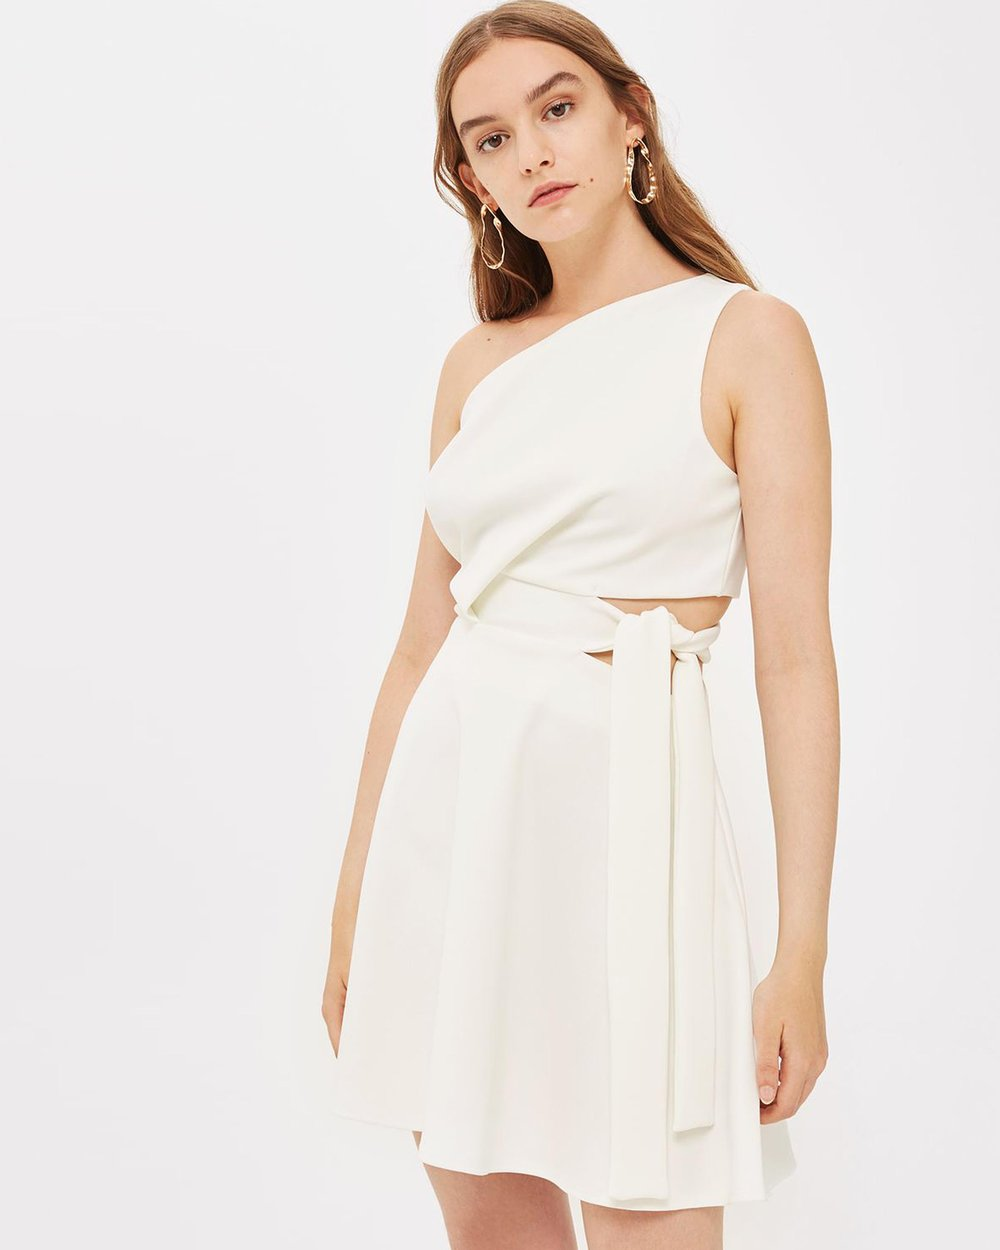 52e0497eeaa5 One Shoulder Prom Dress by TOPSHOP Online | THE ICONIC | Australia